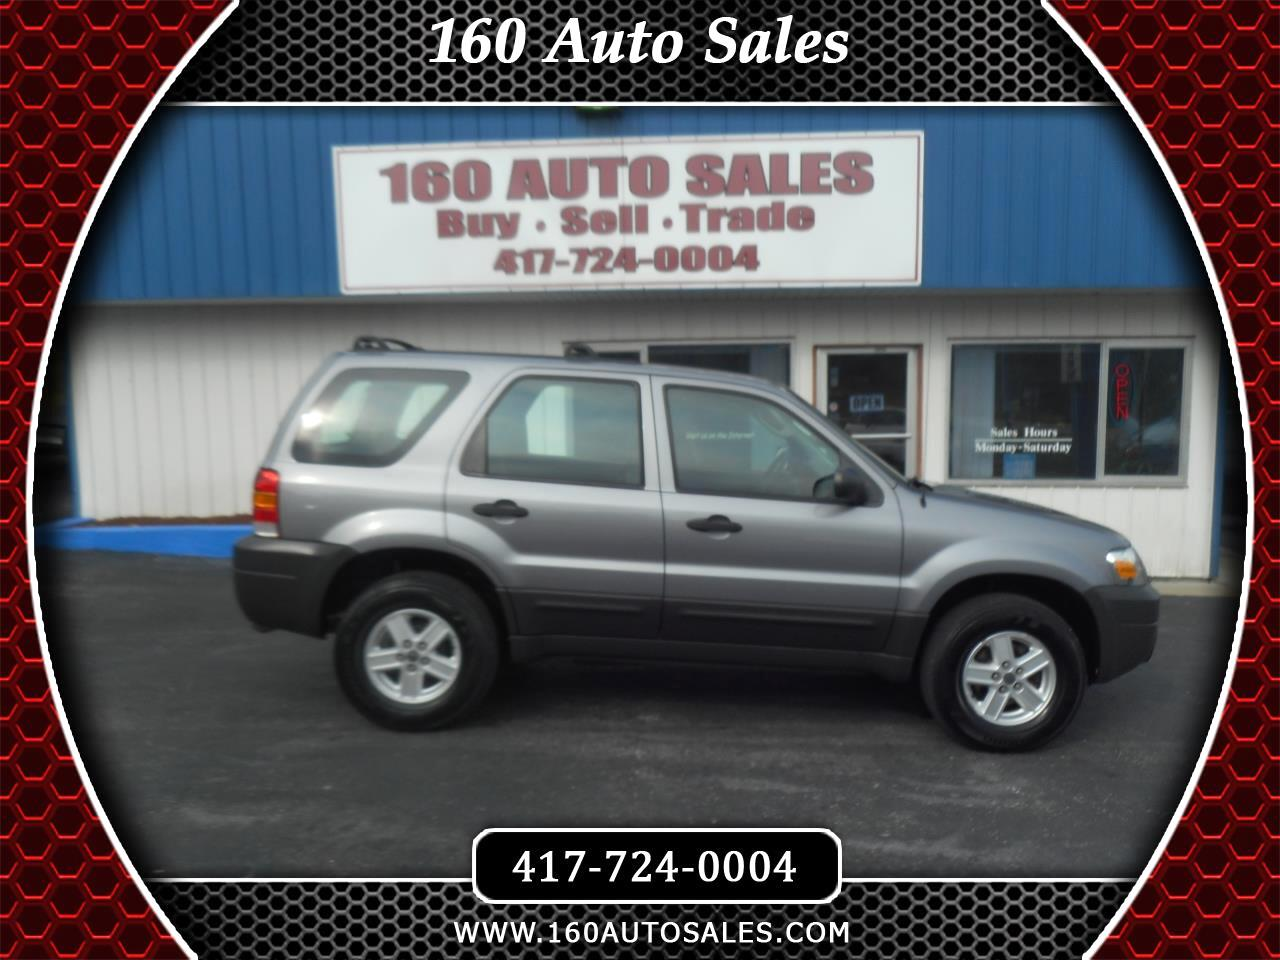 Ford Escape 2WD 4dr I4 Auto XLS 2007